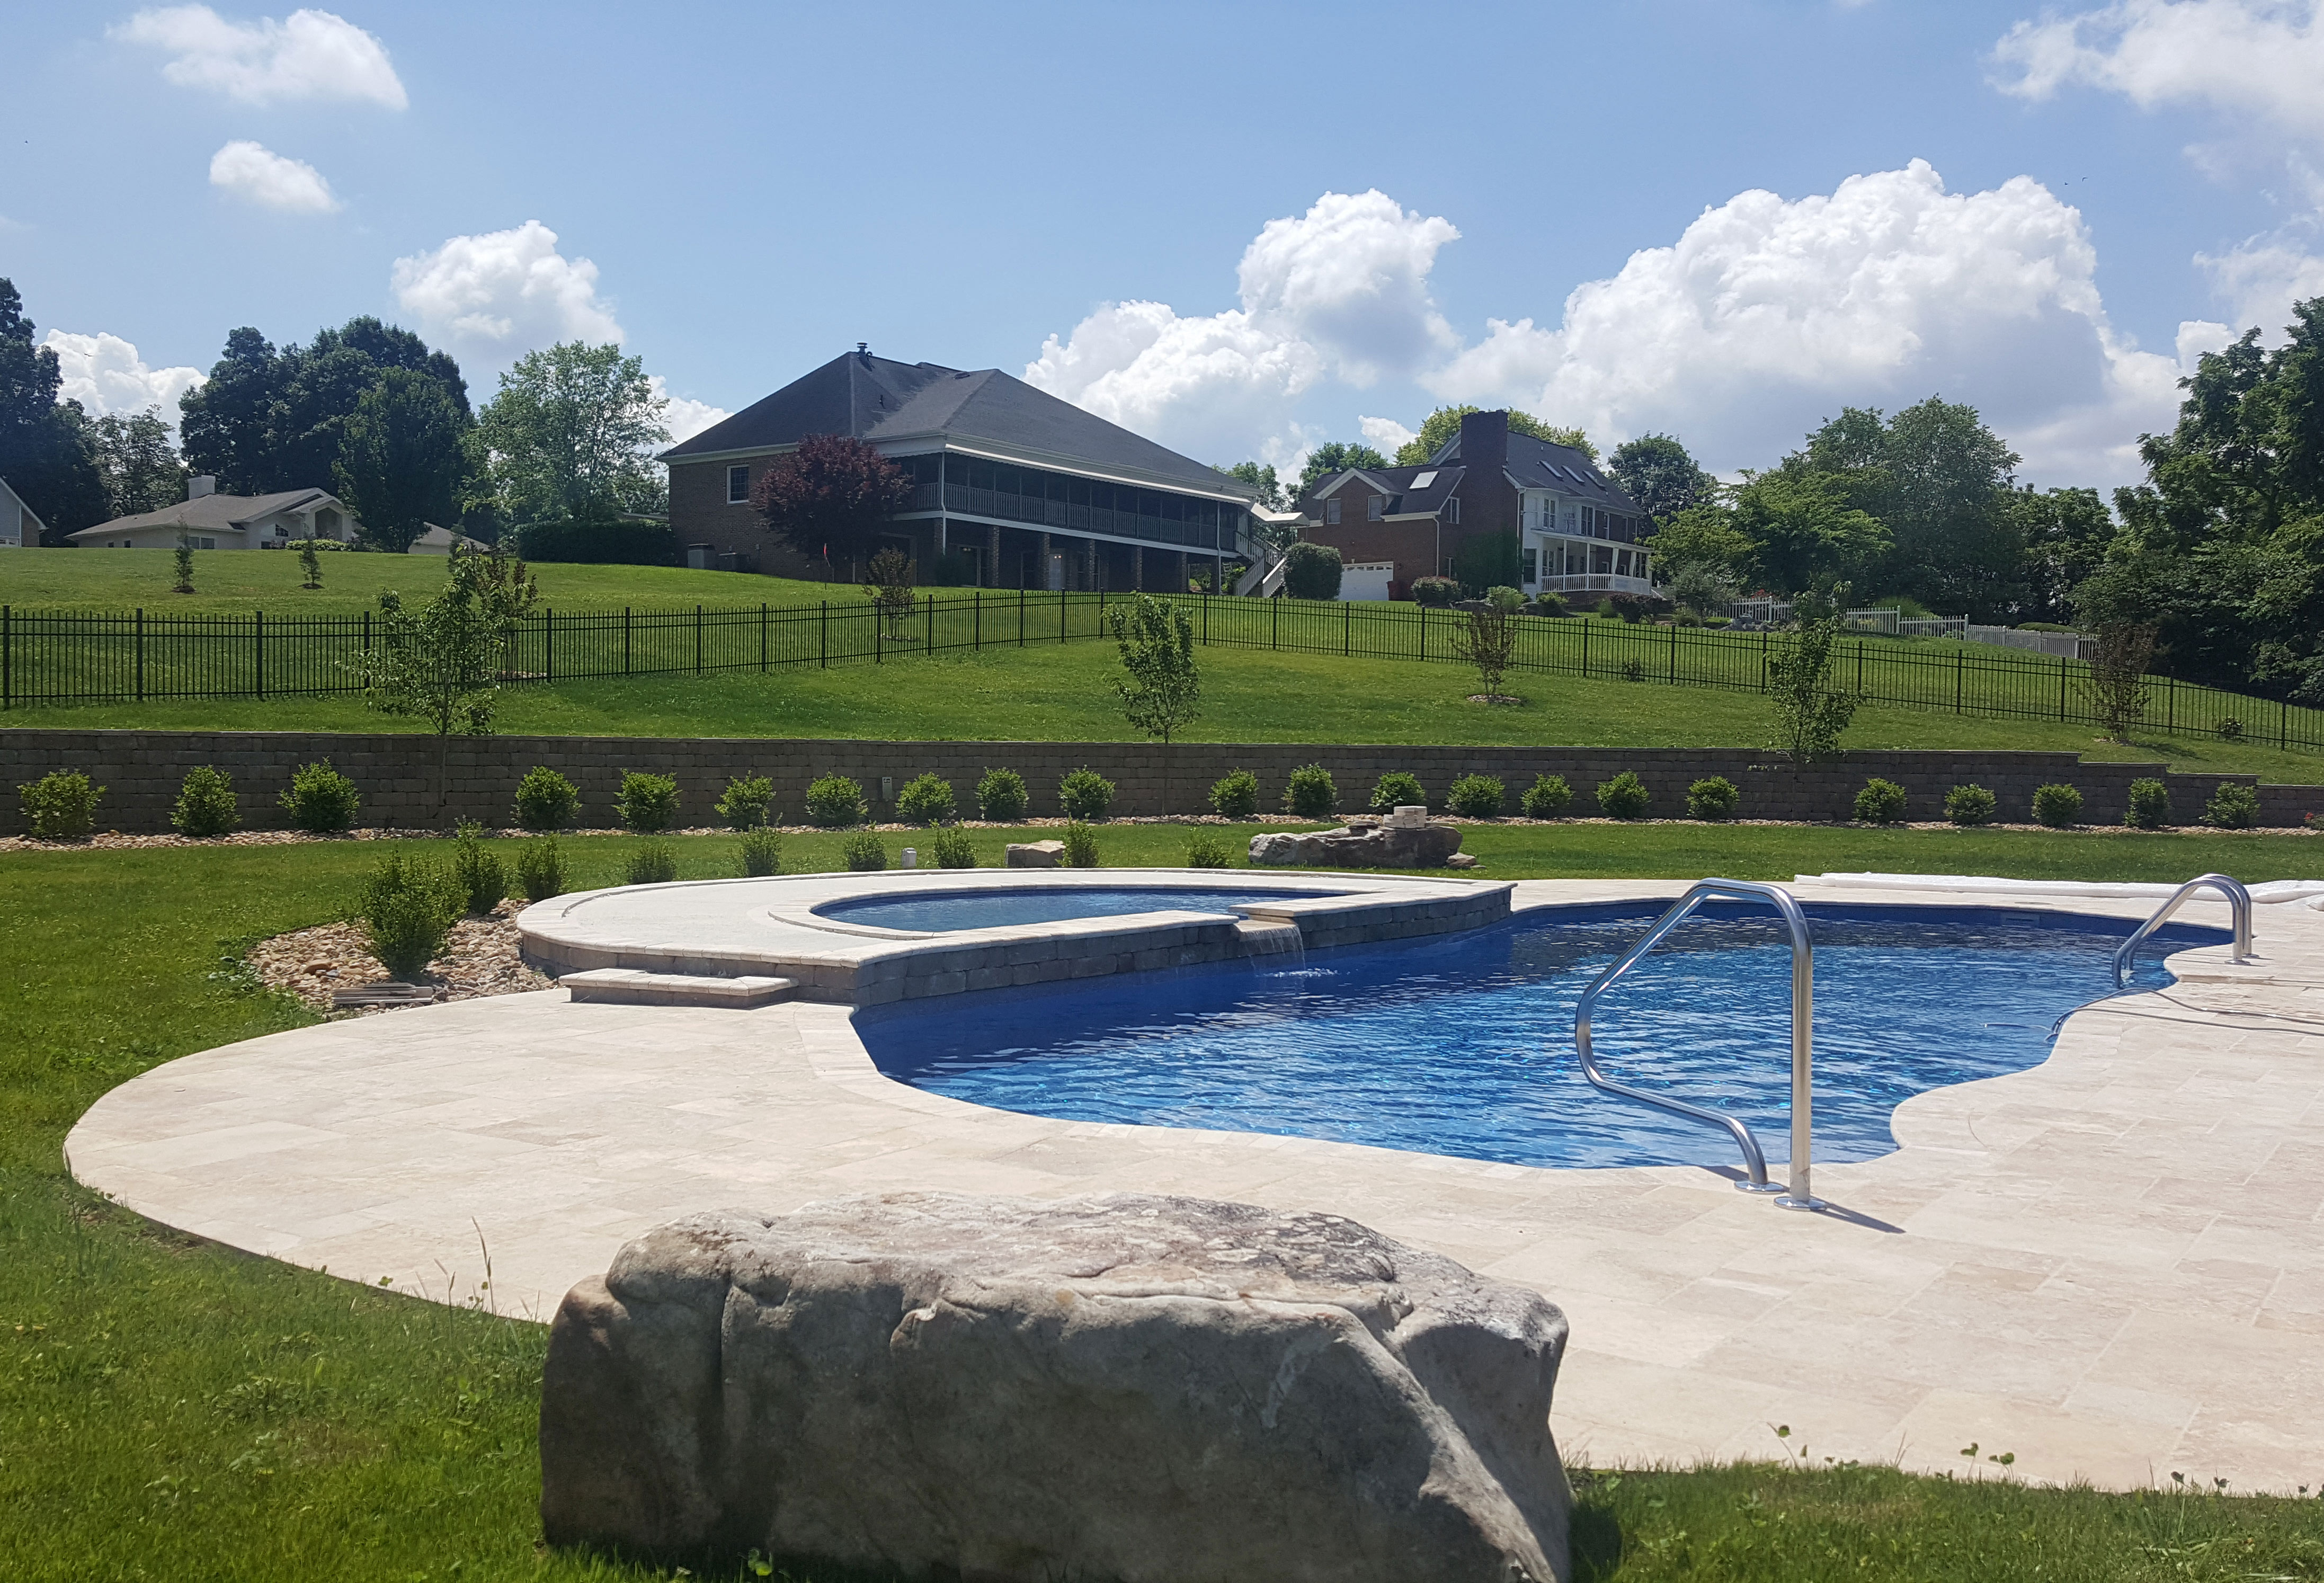 Grand Home Overlooking Large In Ground Pool With Tanning Ledge and Boulders